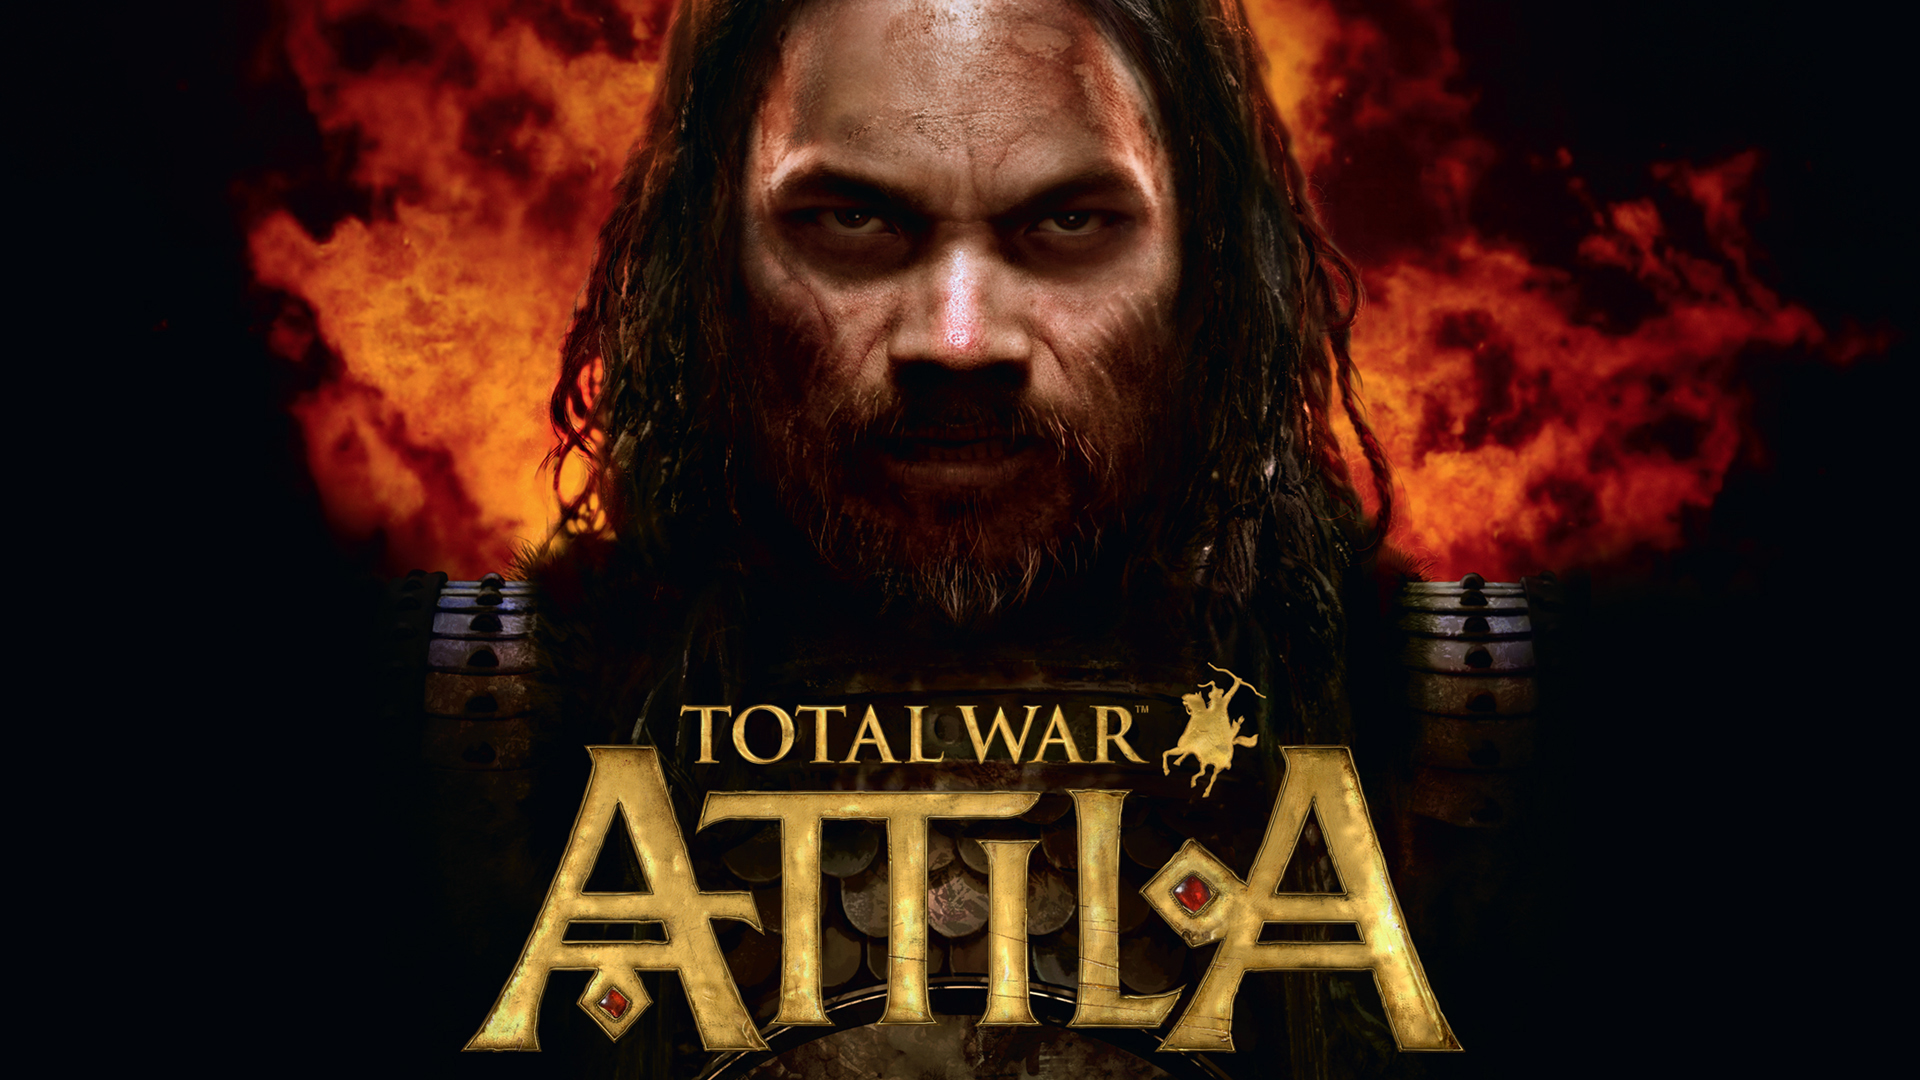 Video Game   Total War Attila Attila War Total Wallpaper 1920x1080